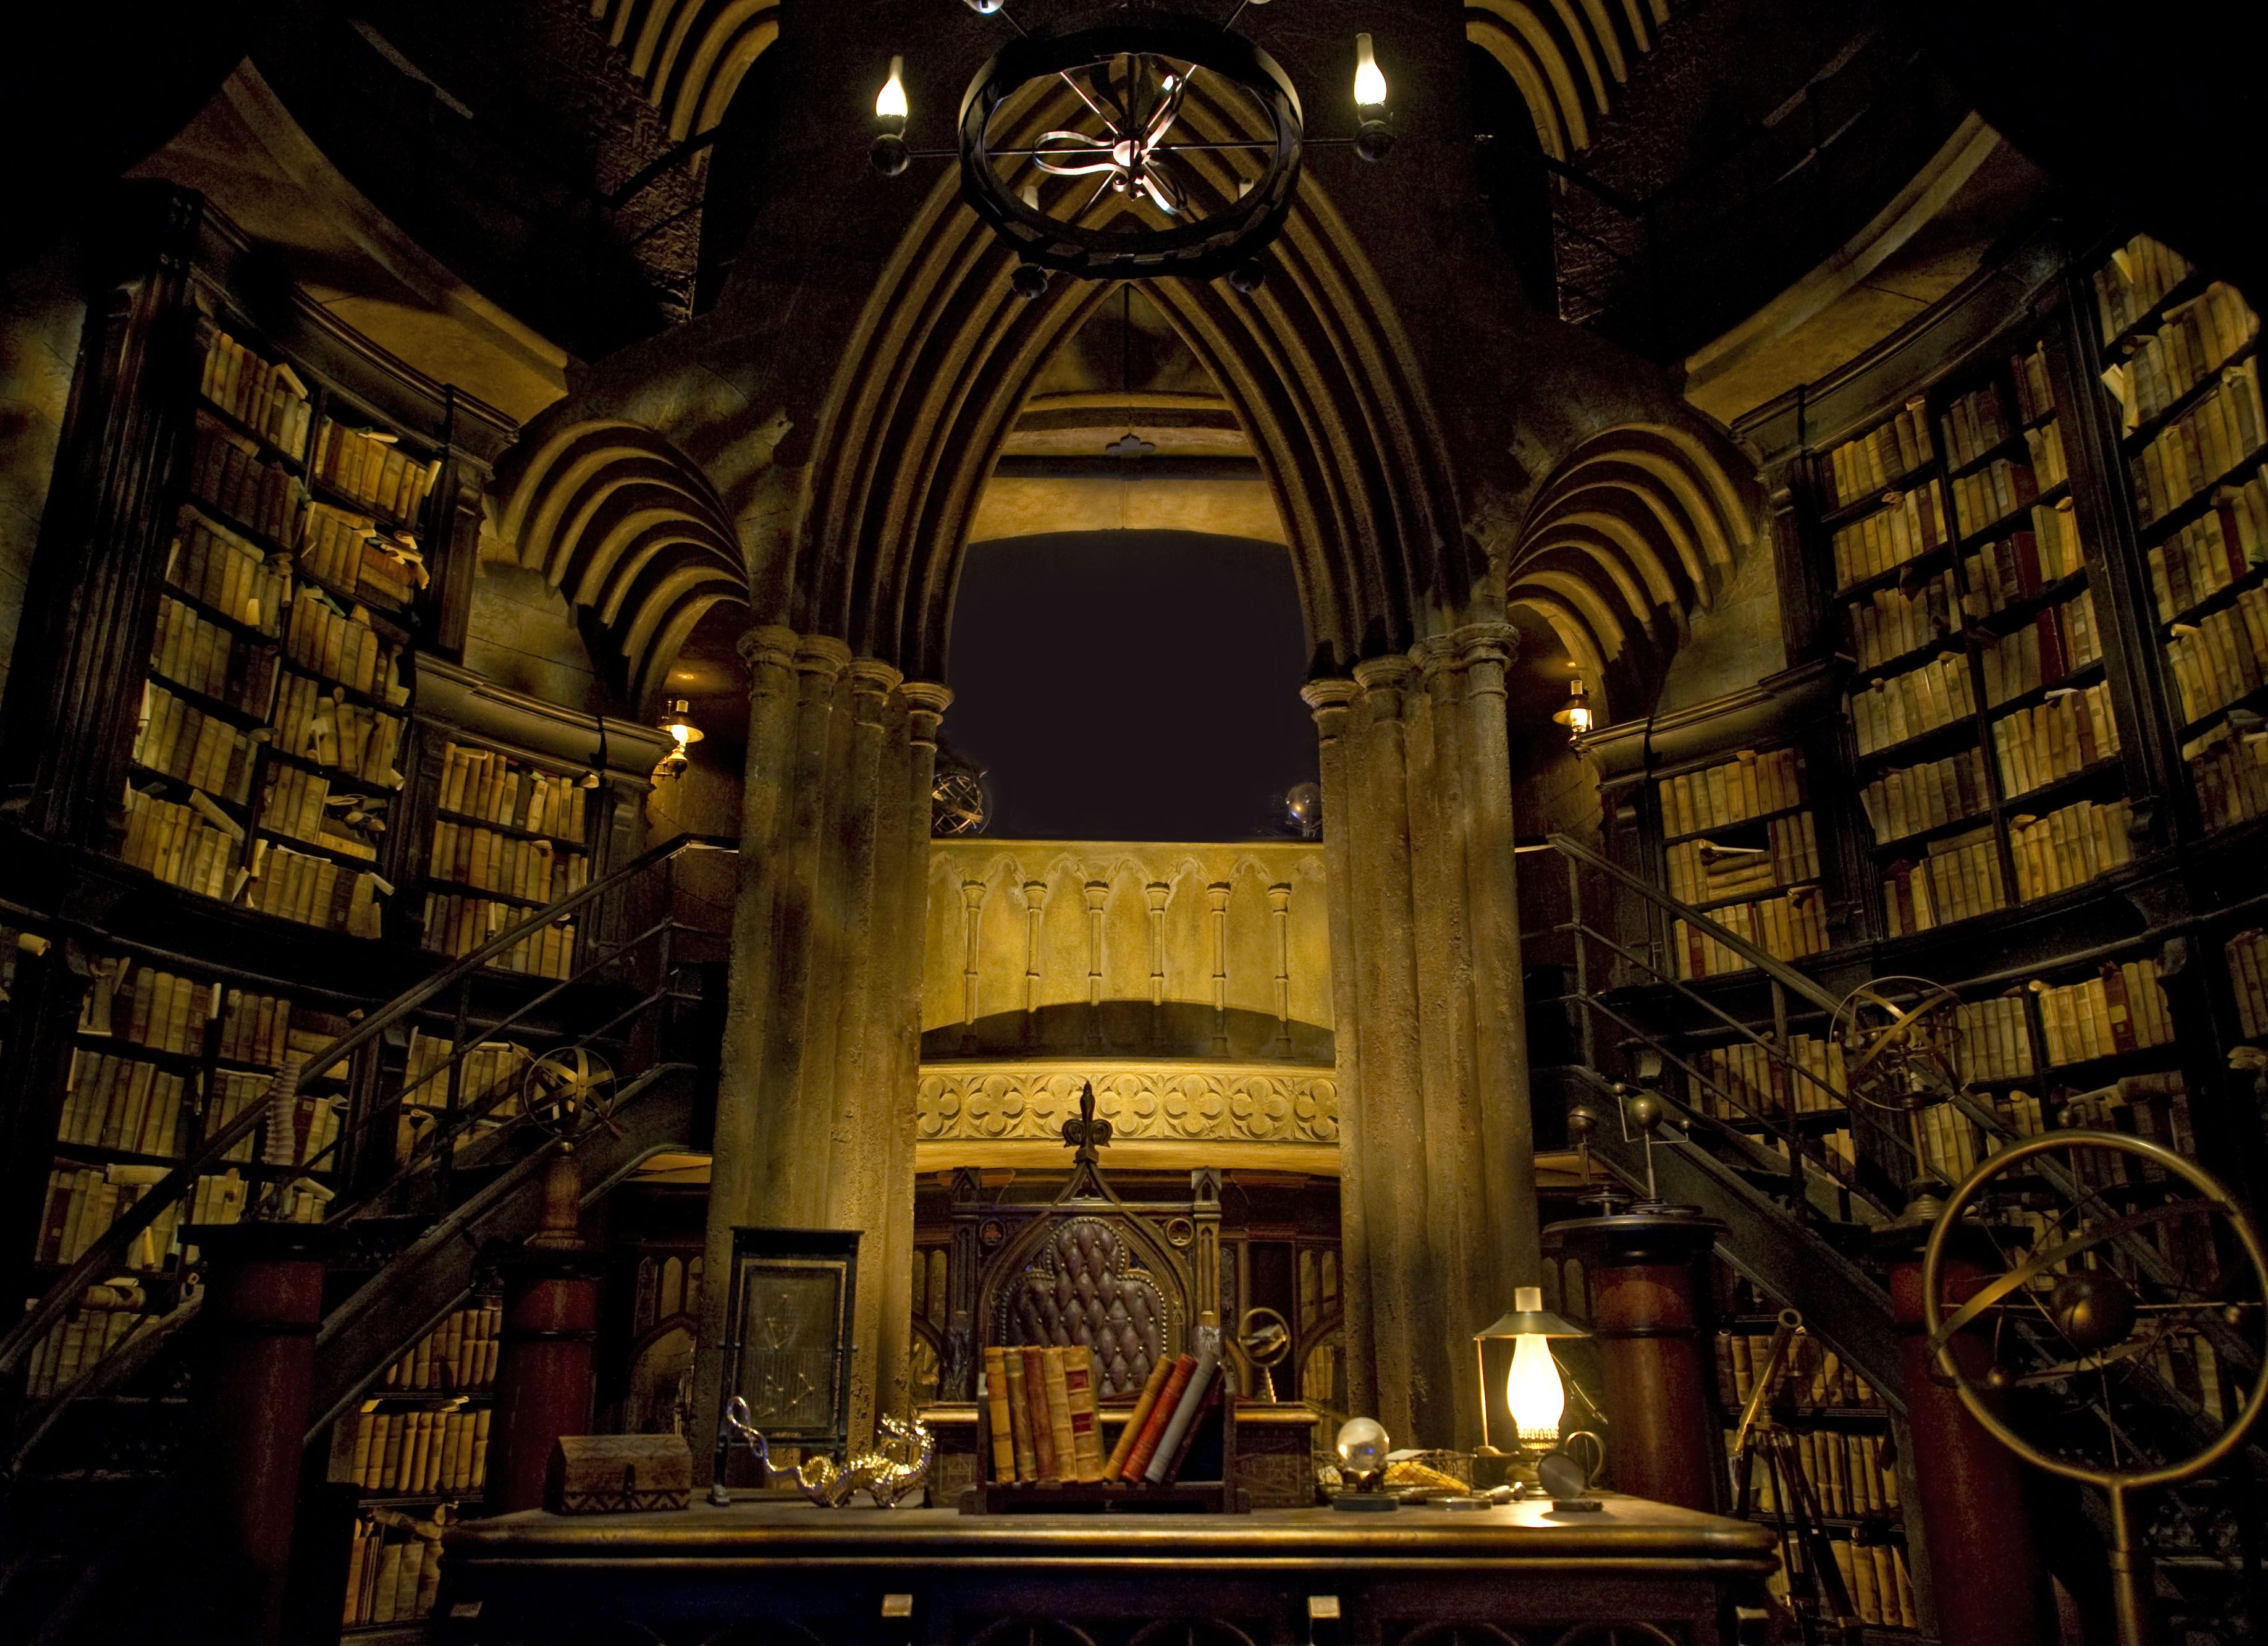 Charming Harry Potter · Dumbledoreu0027s Office Library #universal #studios #orlando